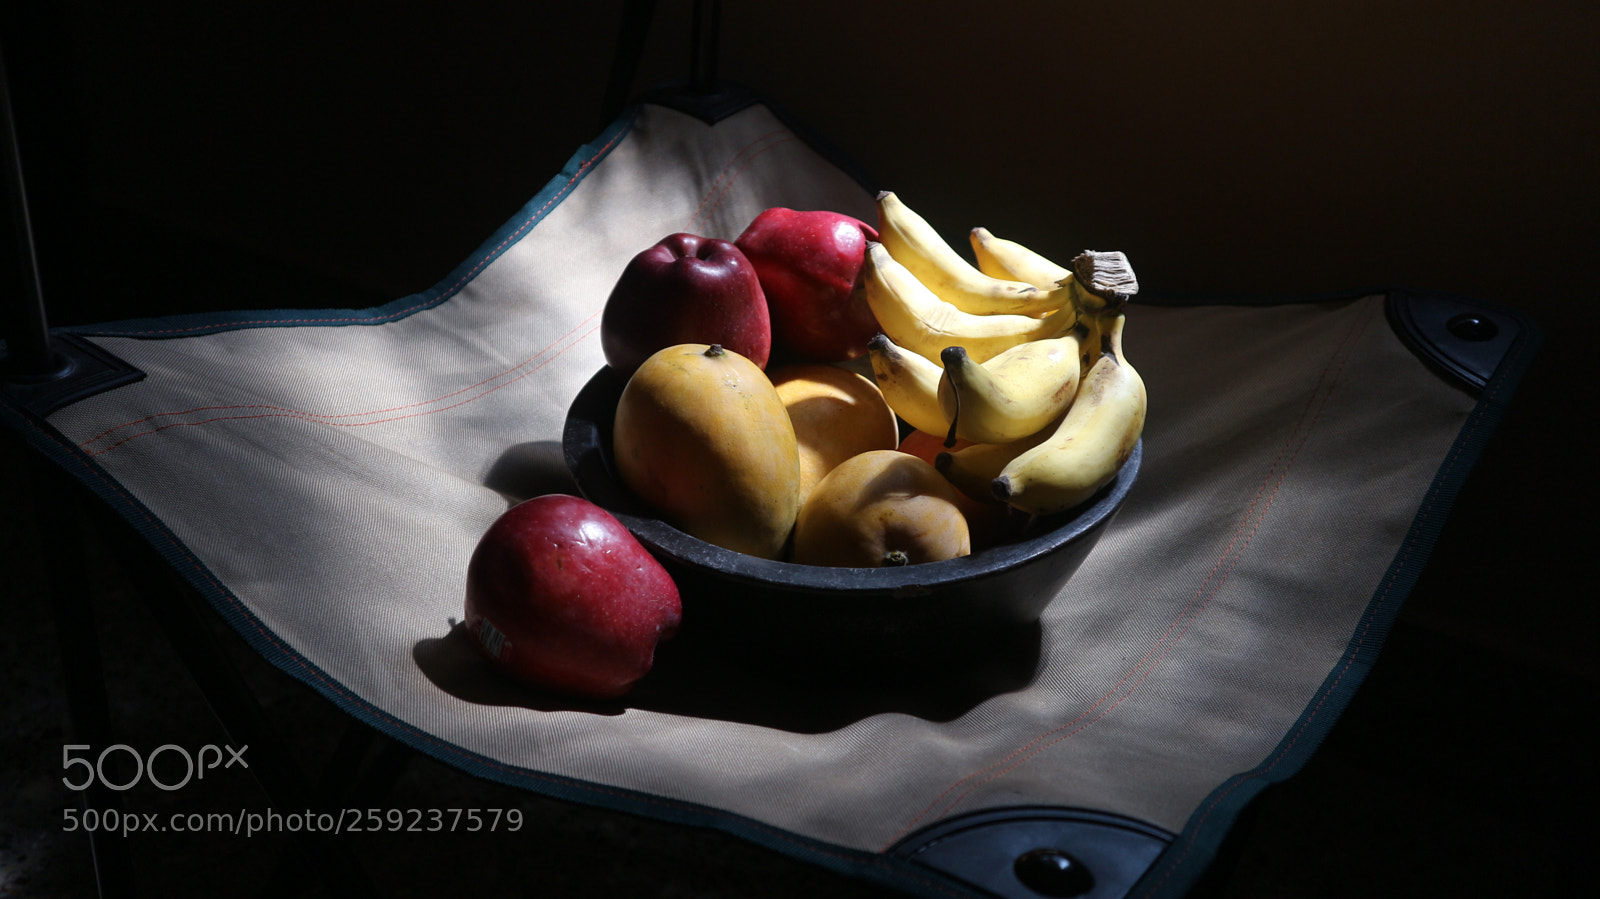 fruits, Canon EOS M10, Canon EF-M 15-45mm f/3.5-6.3 IS STM